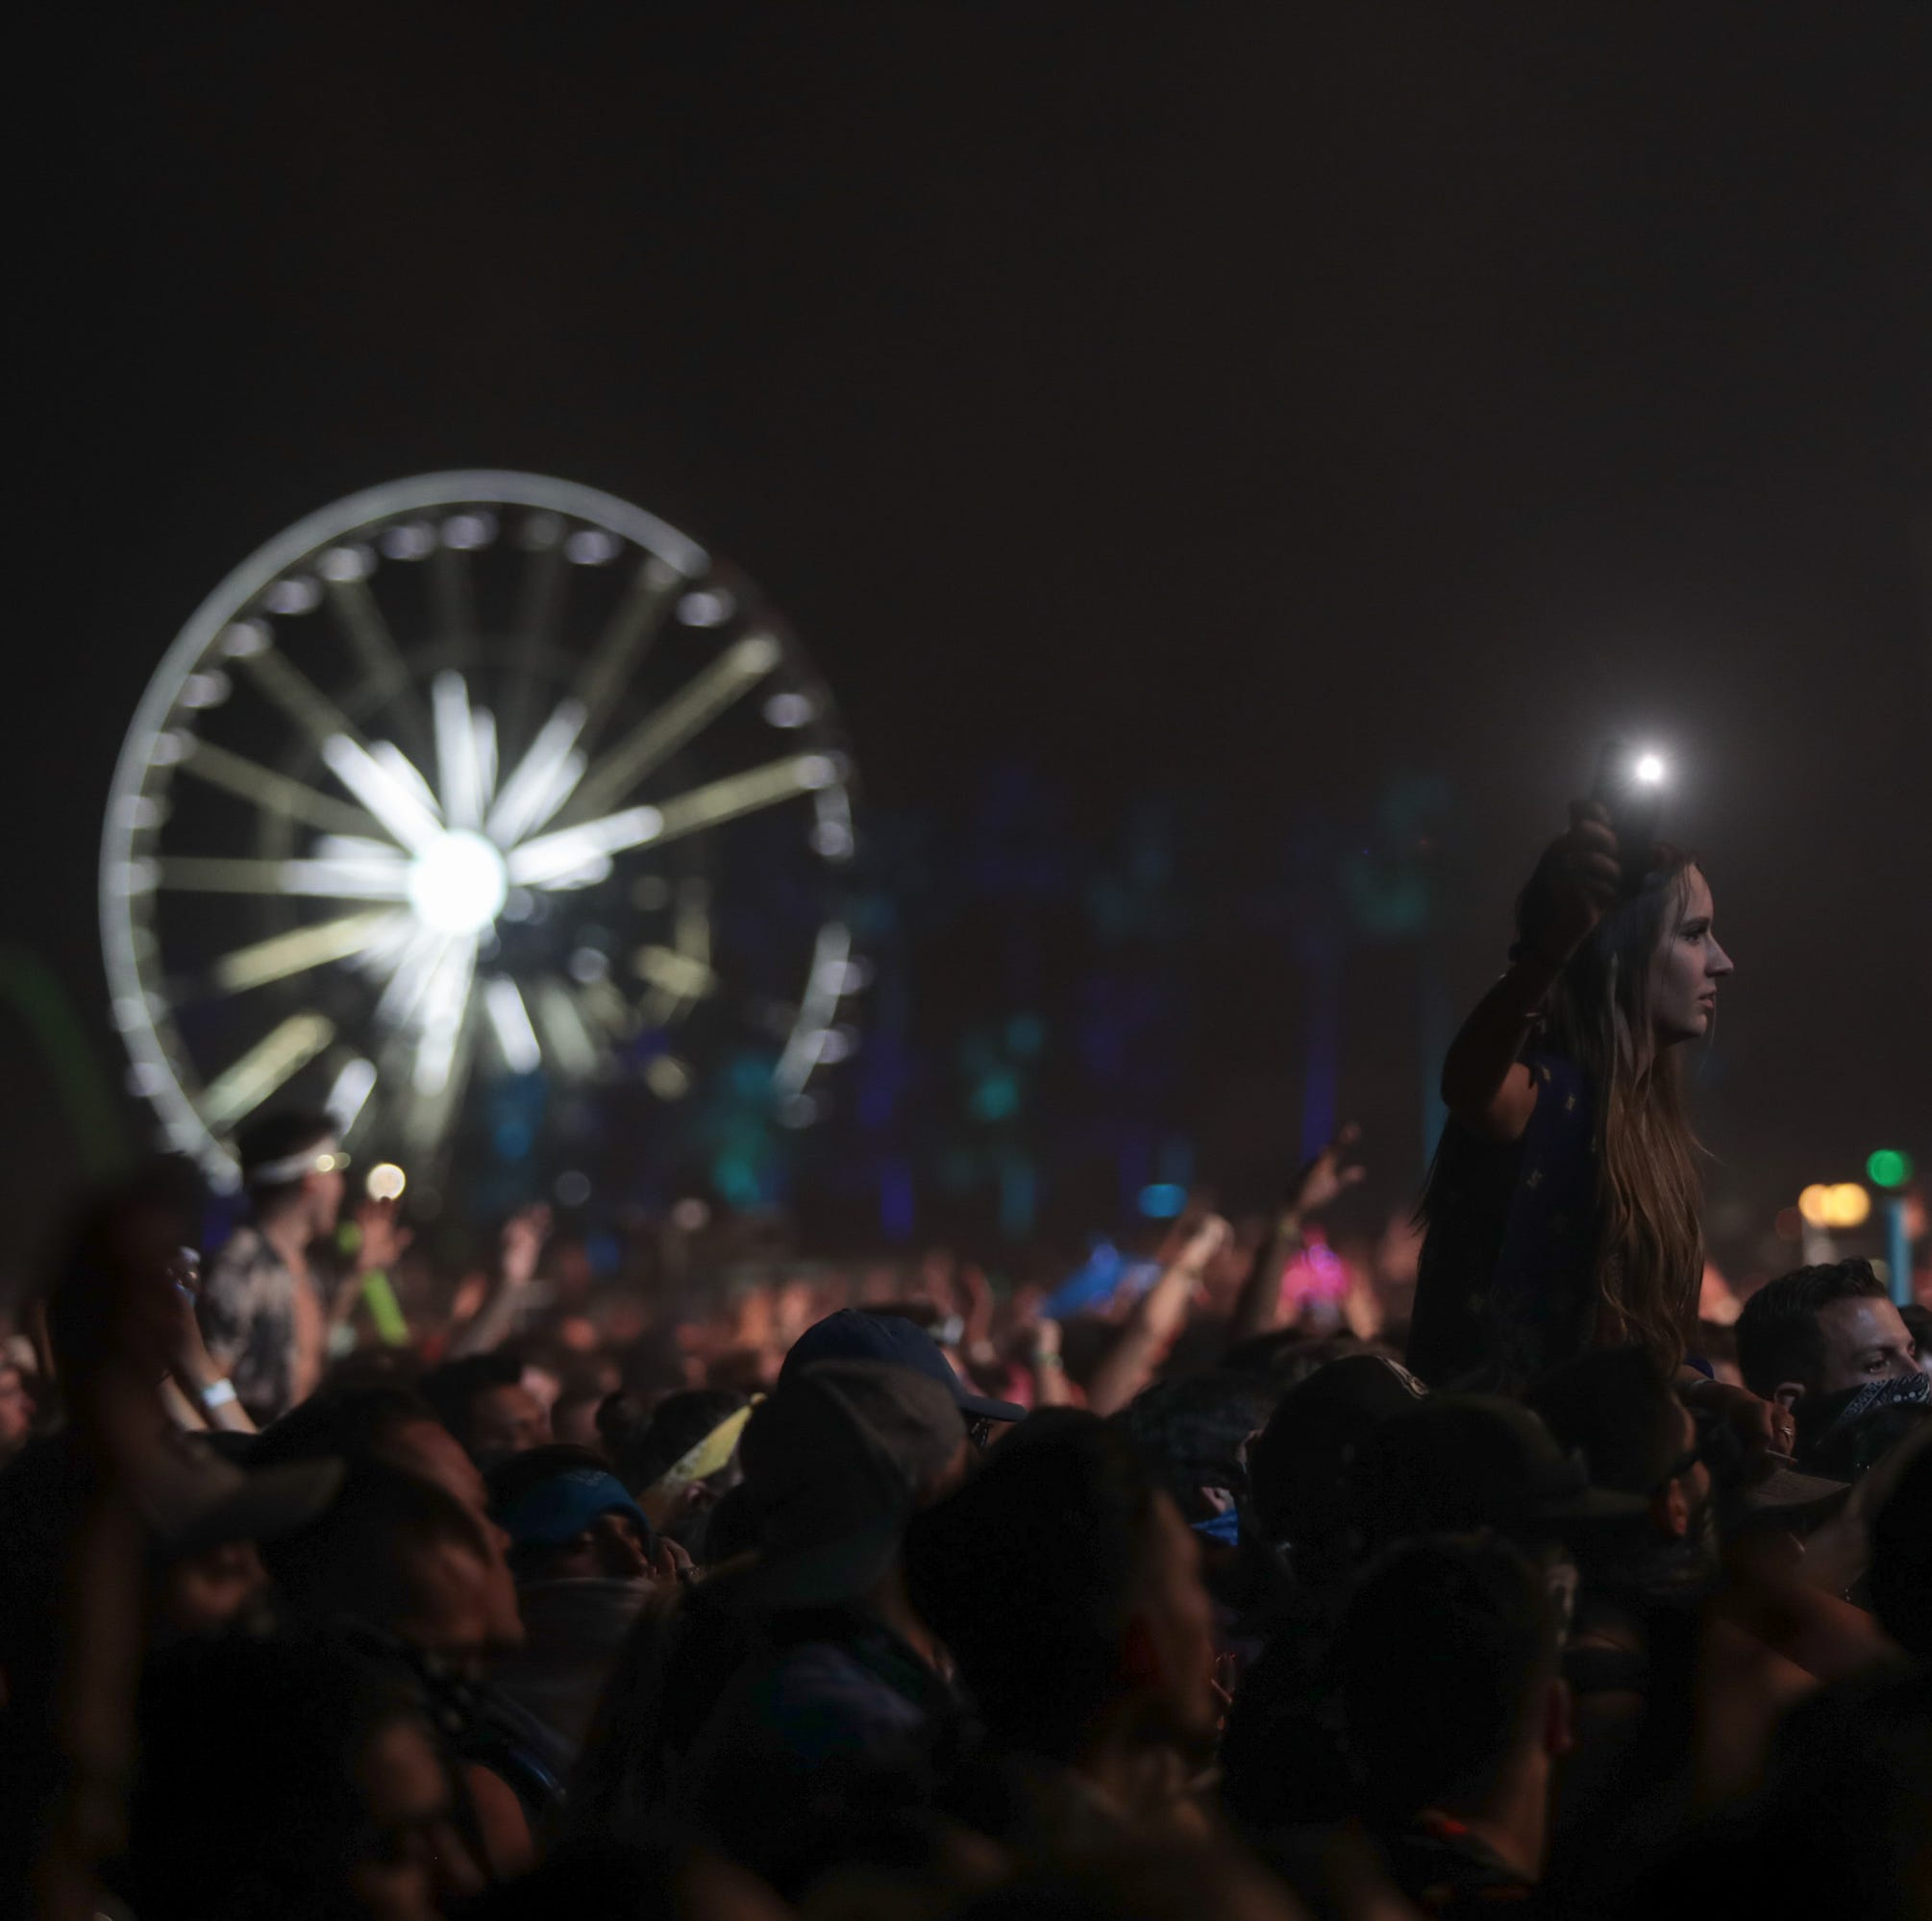 We reviewed rape statistics surrounding Coachella, Stagecoach. Here's what we found